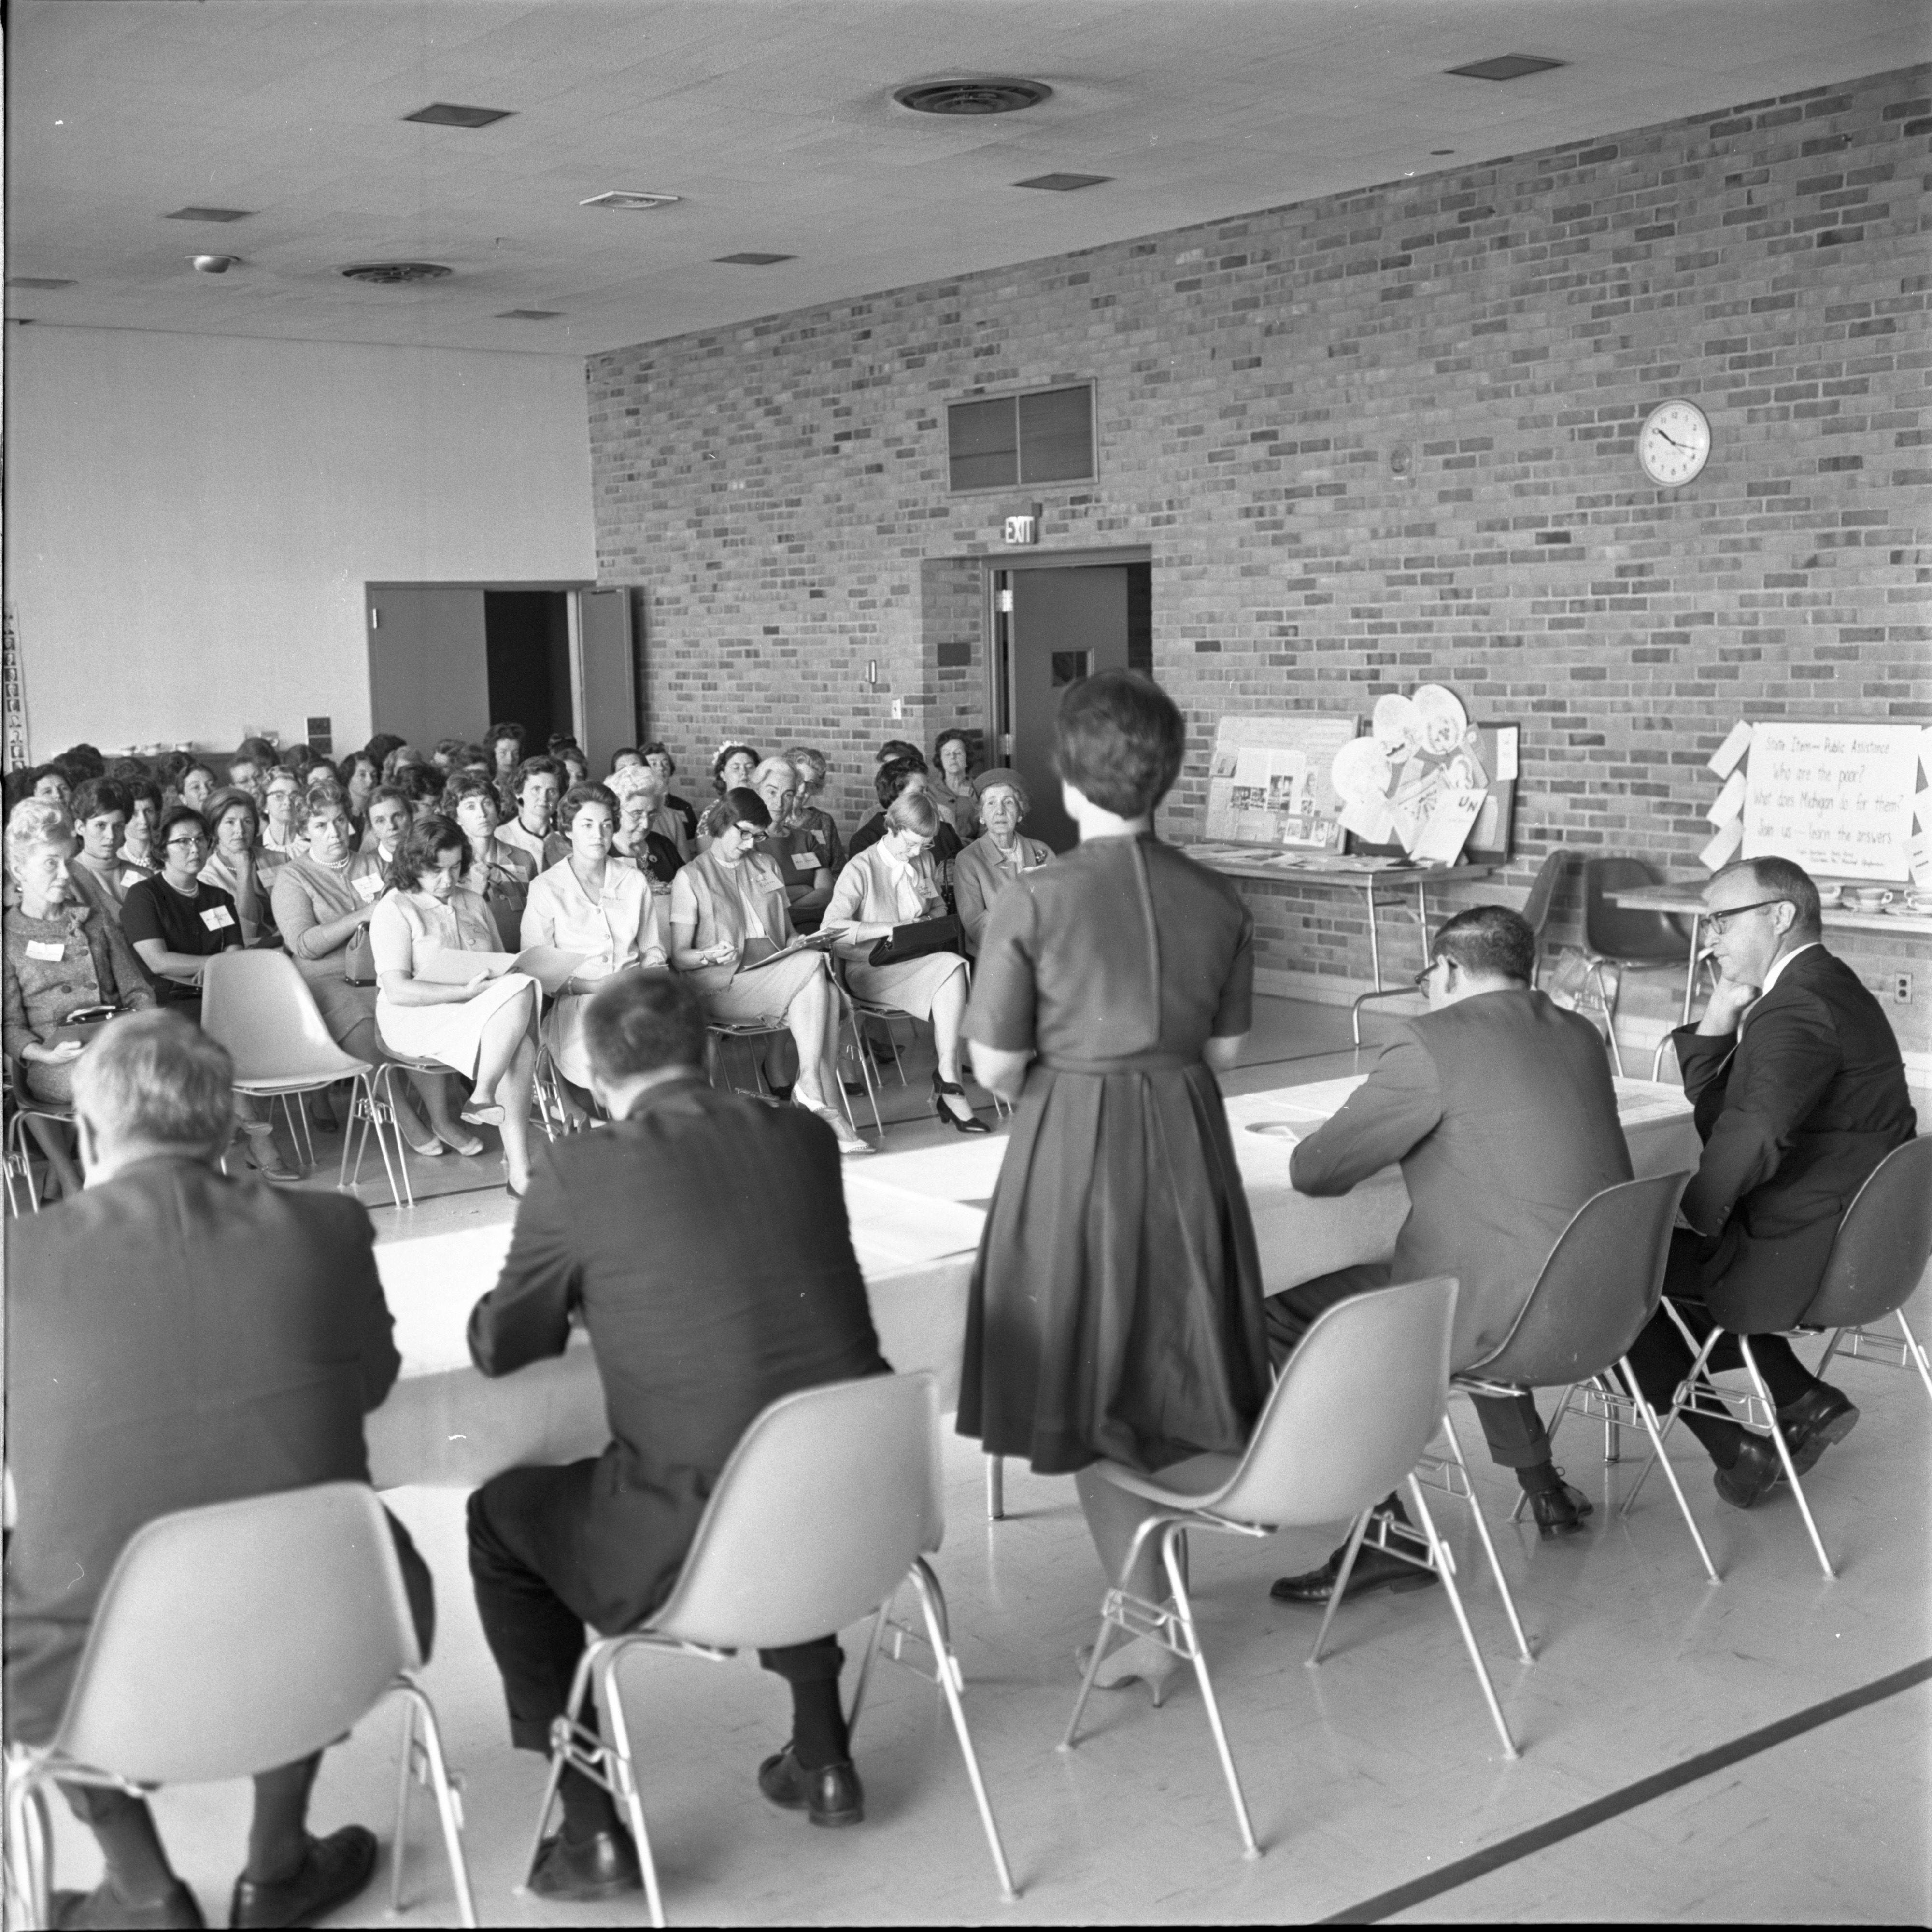 Ann Smith, LWV President, Speaks At The League Of Women Voters Annual Meeting, September 1964 image